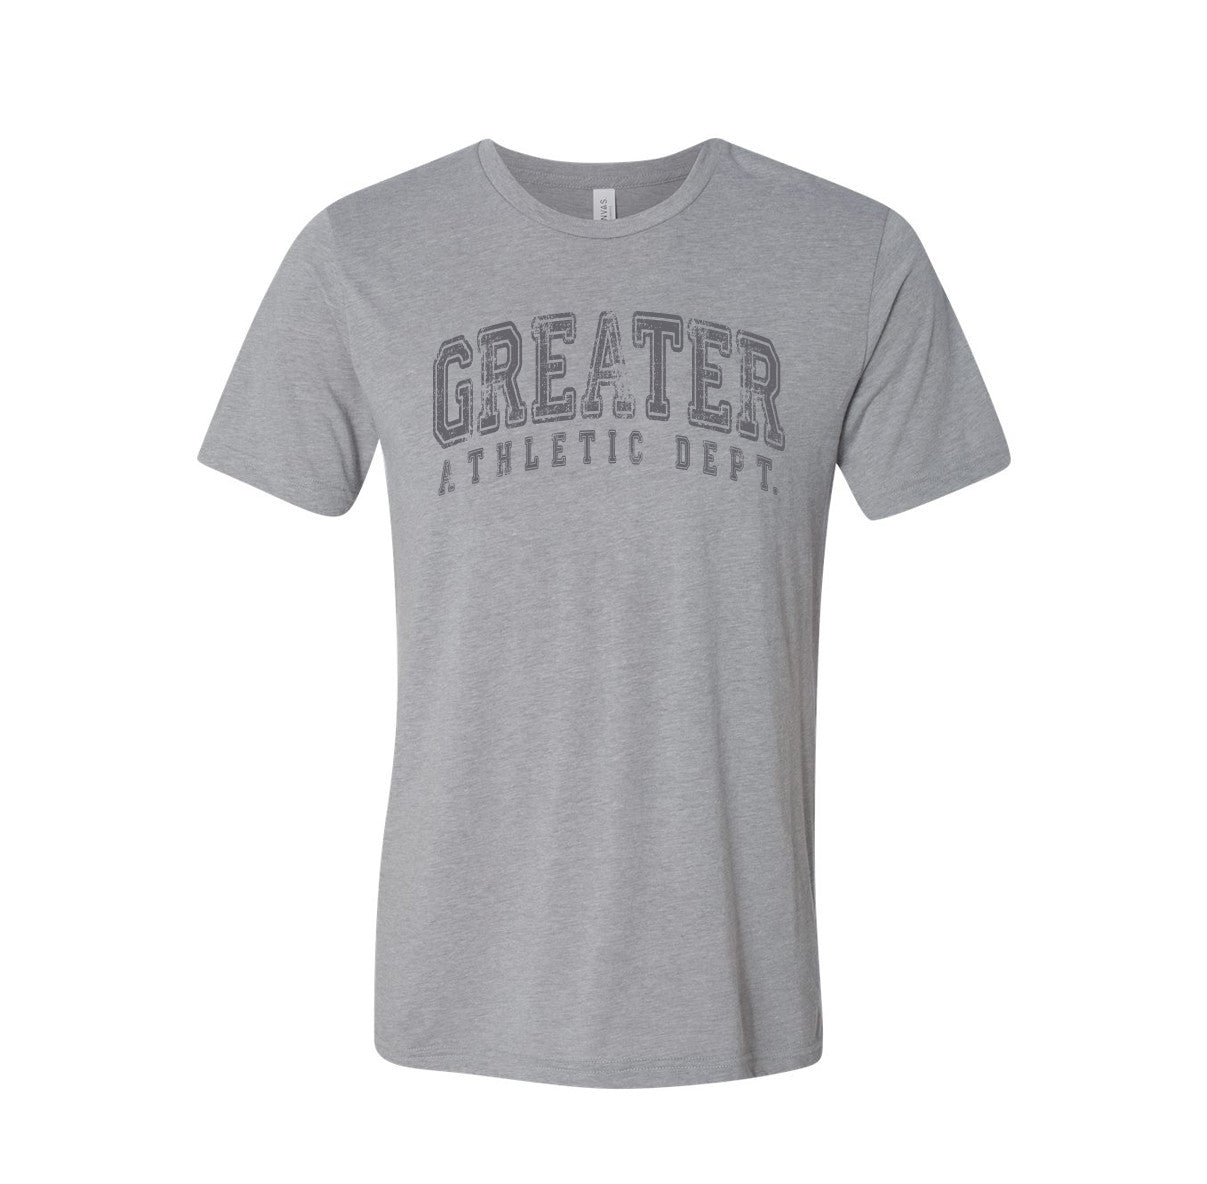 Men -Greater Athletic Department Shirt